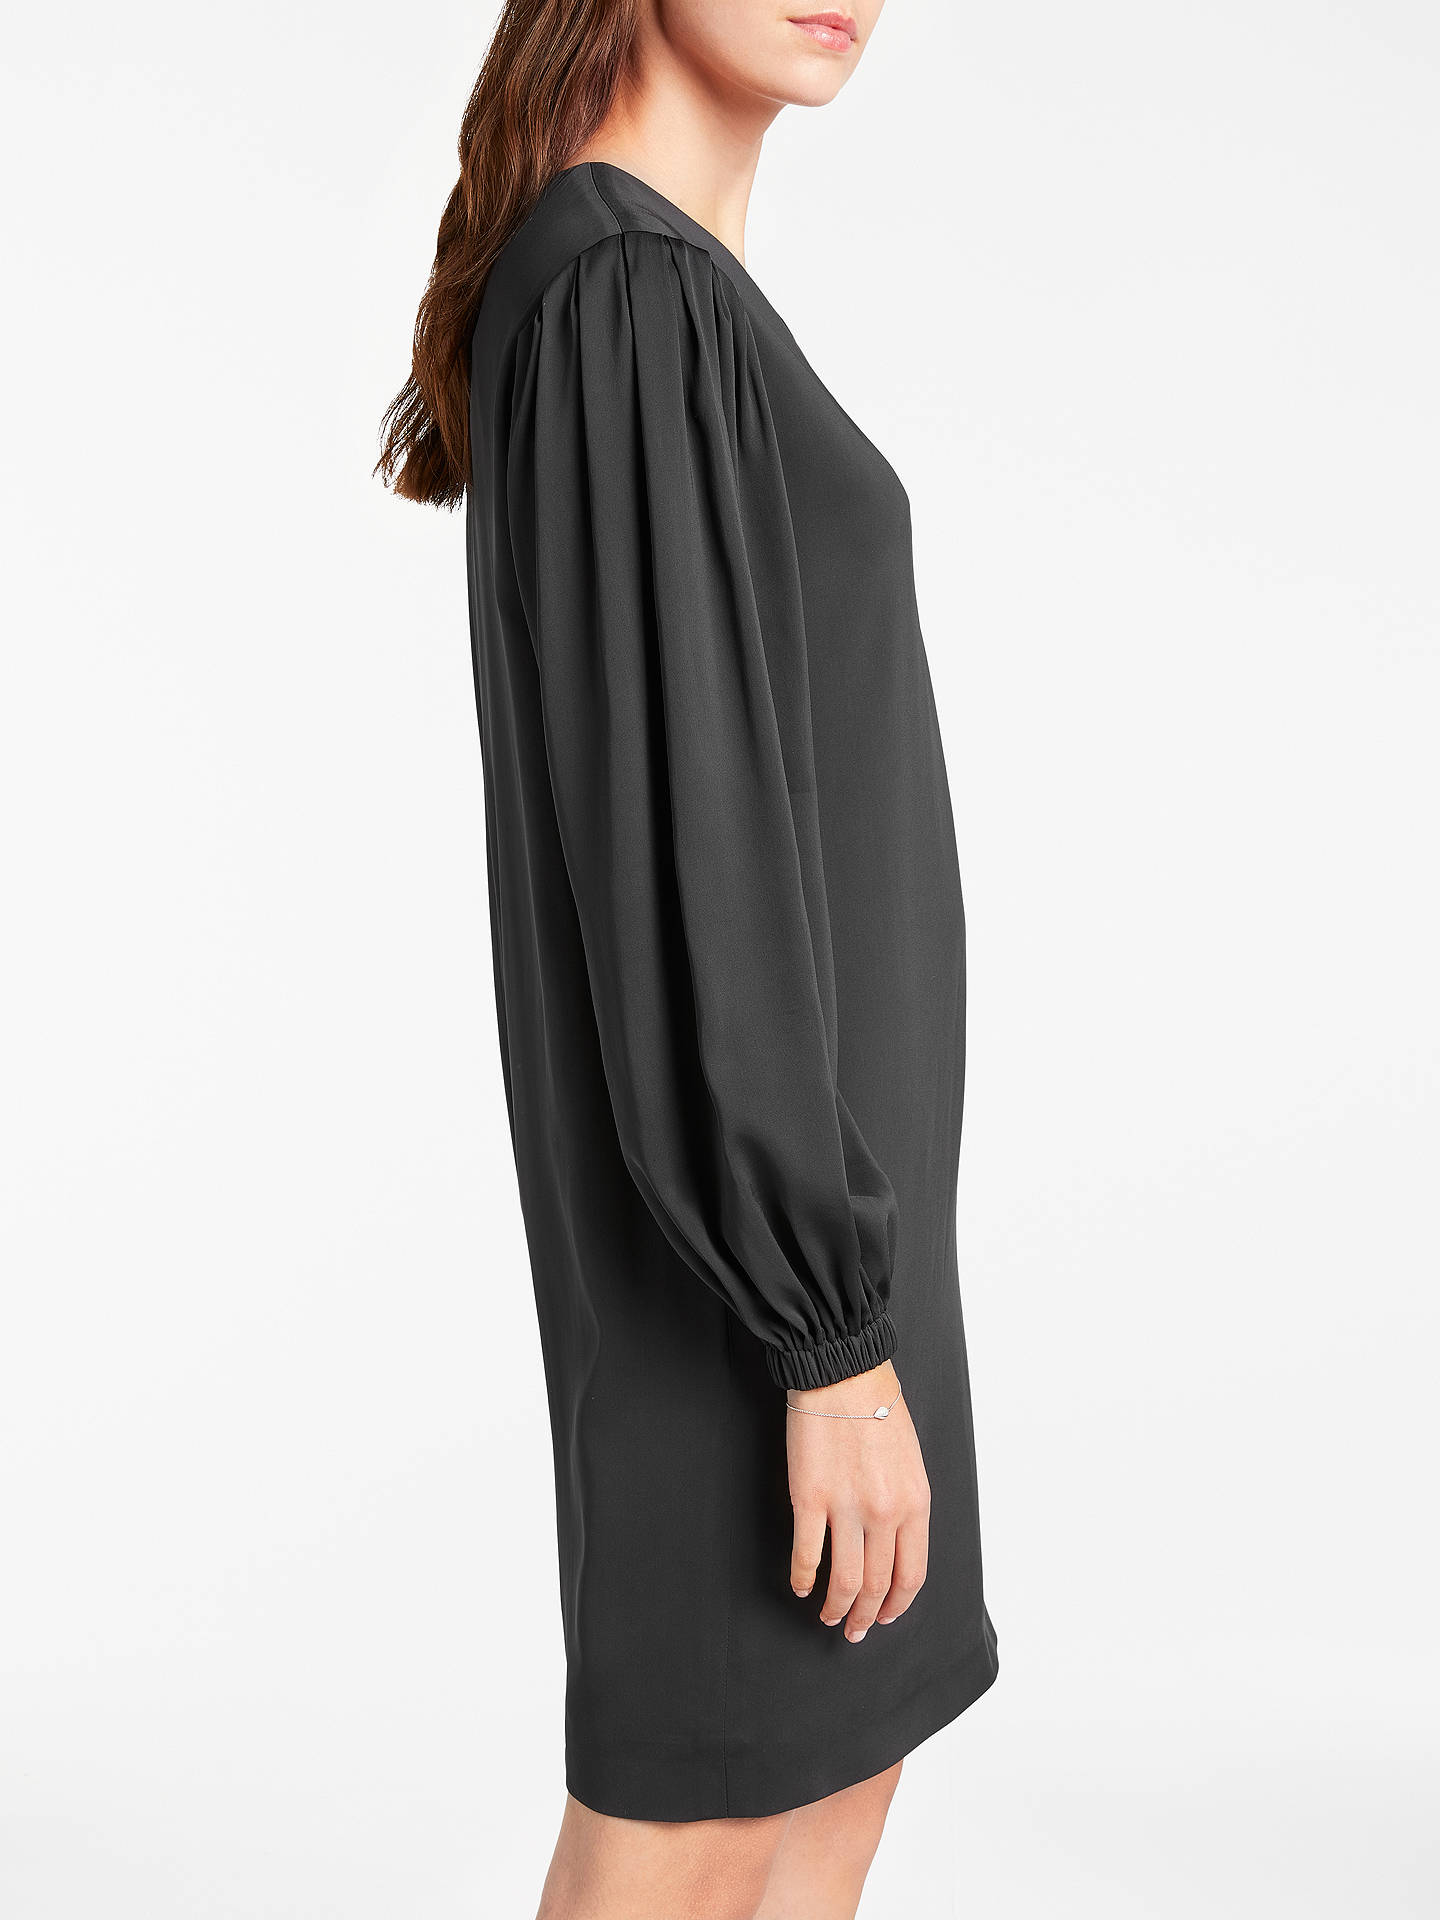 BuyModern Rarity Pleat Sleeve Dress, Charcoal, 8 Online at johnlewis.com